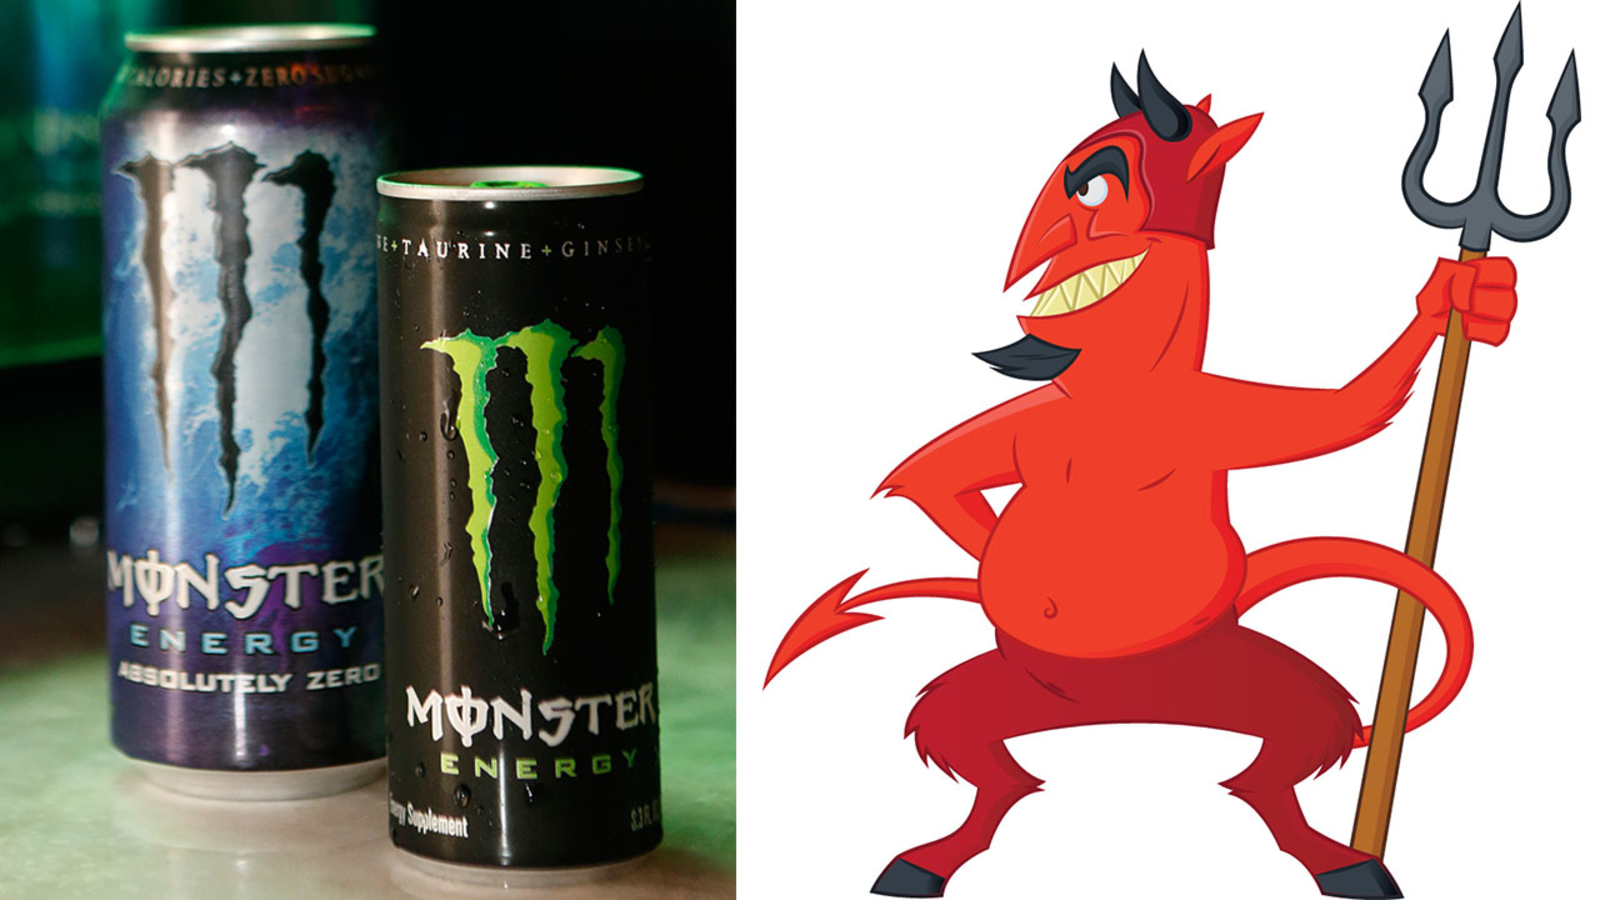 Woman Claims That Monster Energy Drinks Push A Satanic Agenda Abc7 Los Angeles